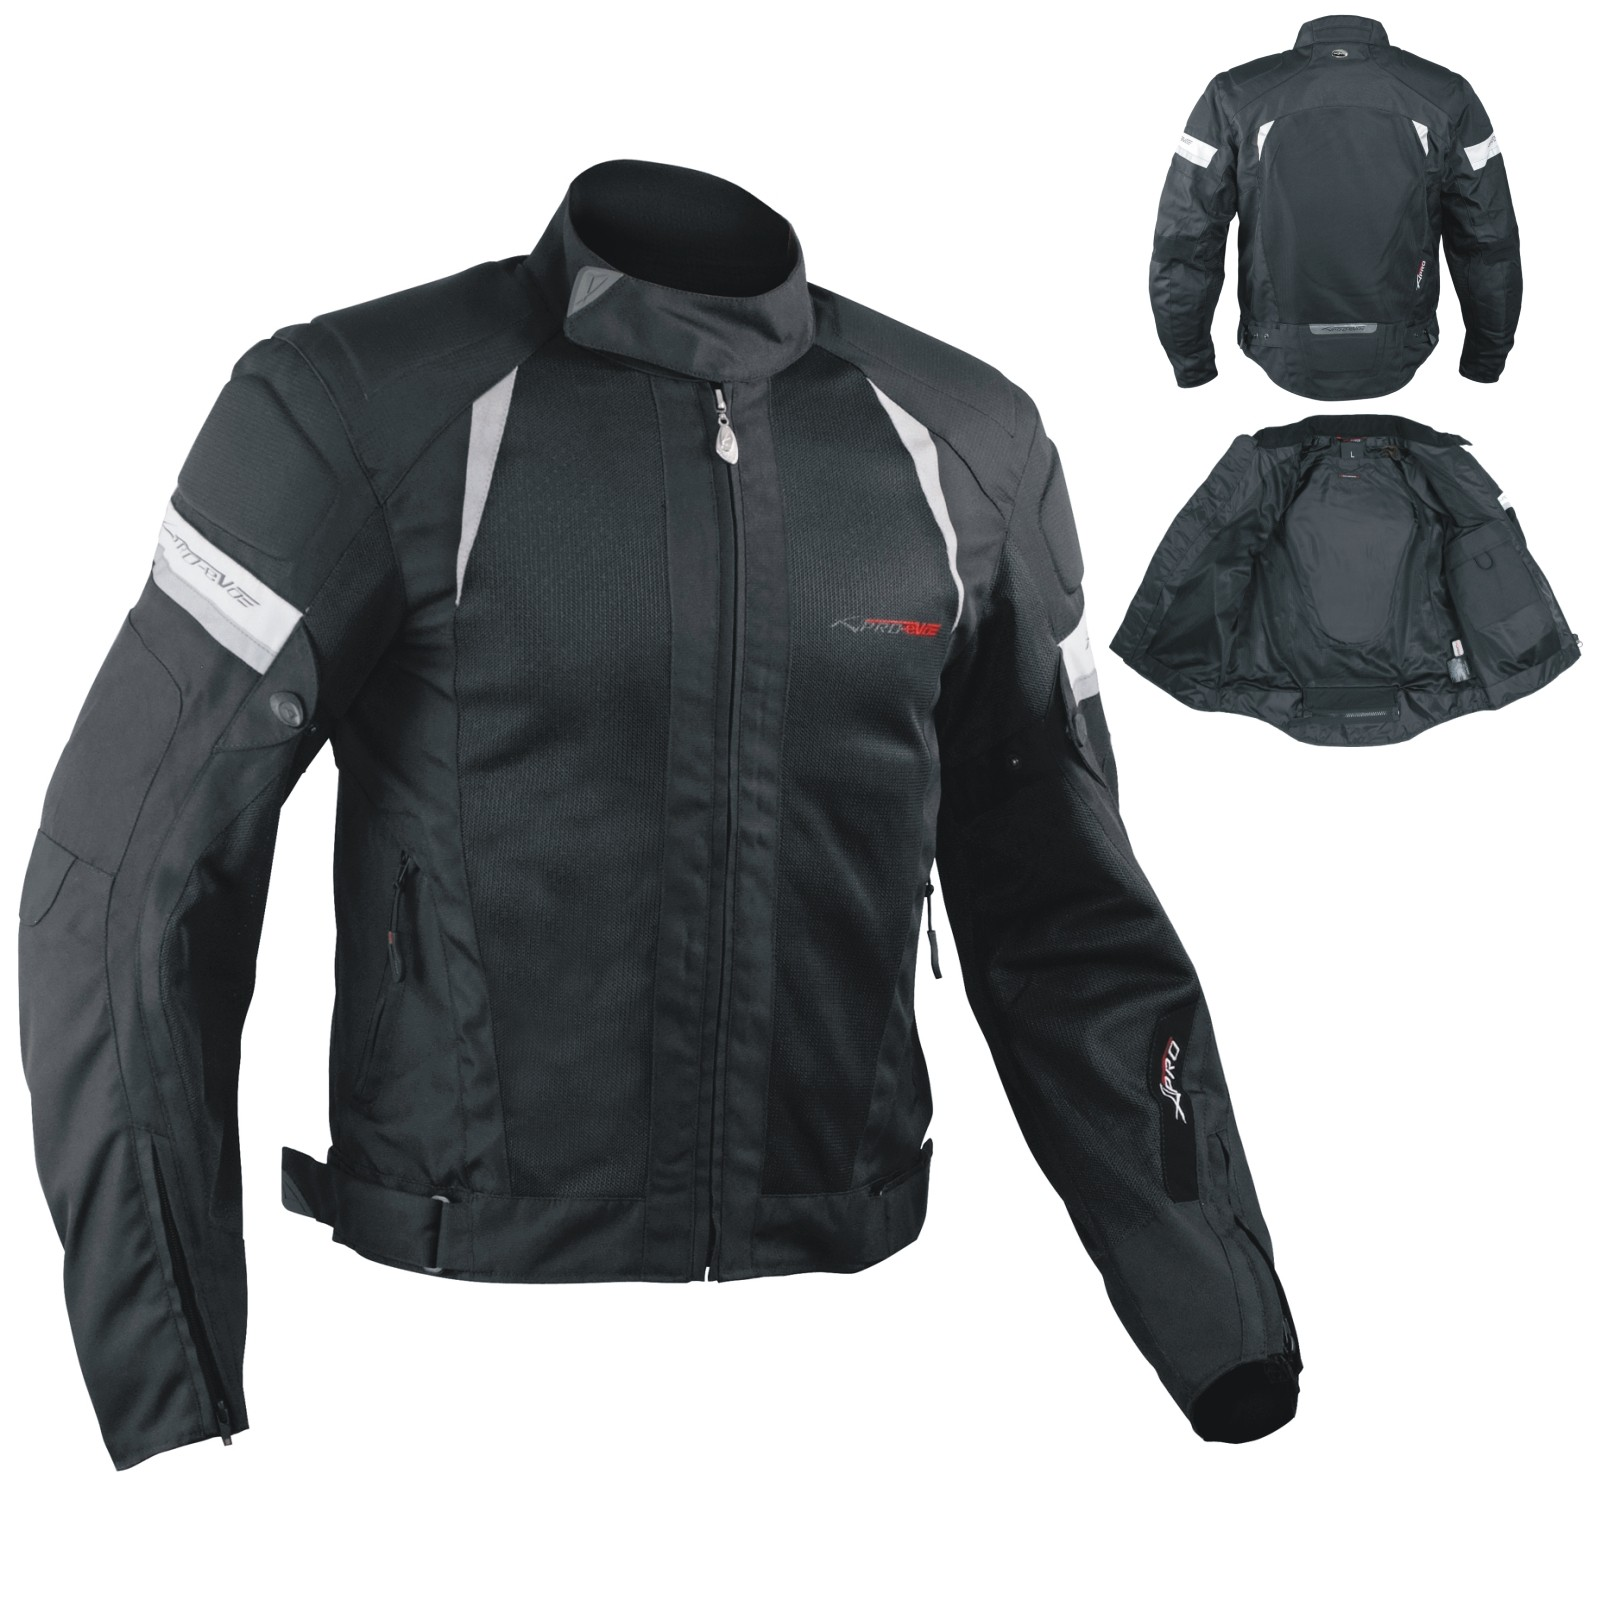 5c96678e427 Eolo Textile Jacket Motorcycle A-pro. 47% OFF. Summer Motorbike Mesh Sport  Racing Touring CE Armored Jacket Motorcycle Black